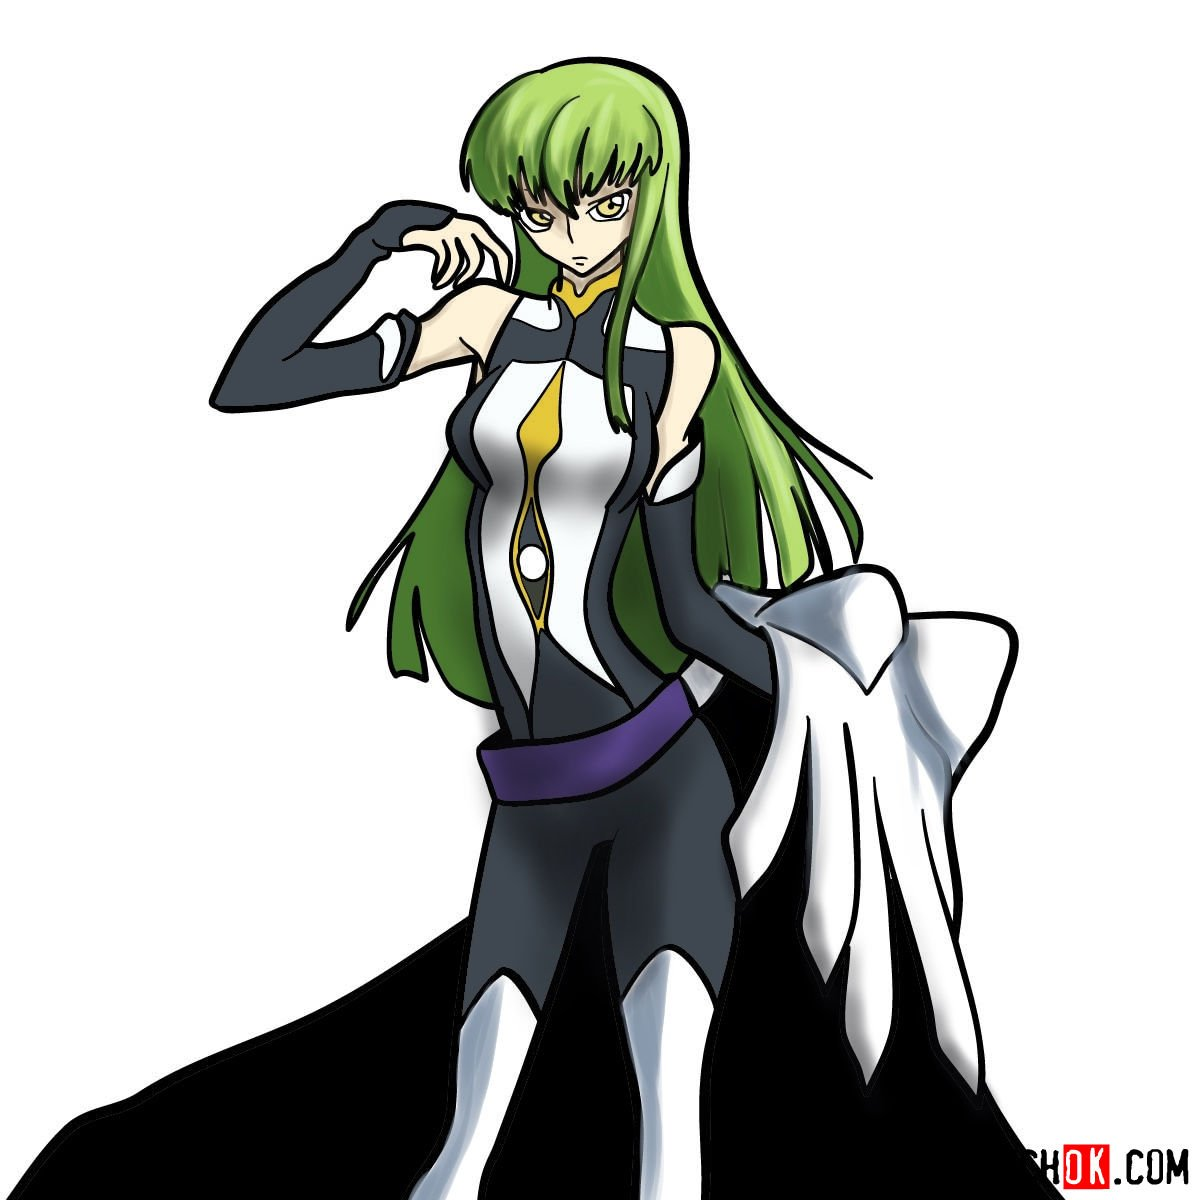 16 steps drawing guide of C.C. from Code Geass anime